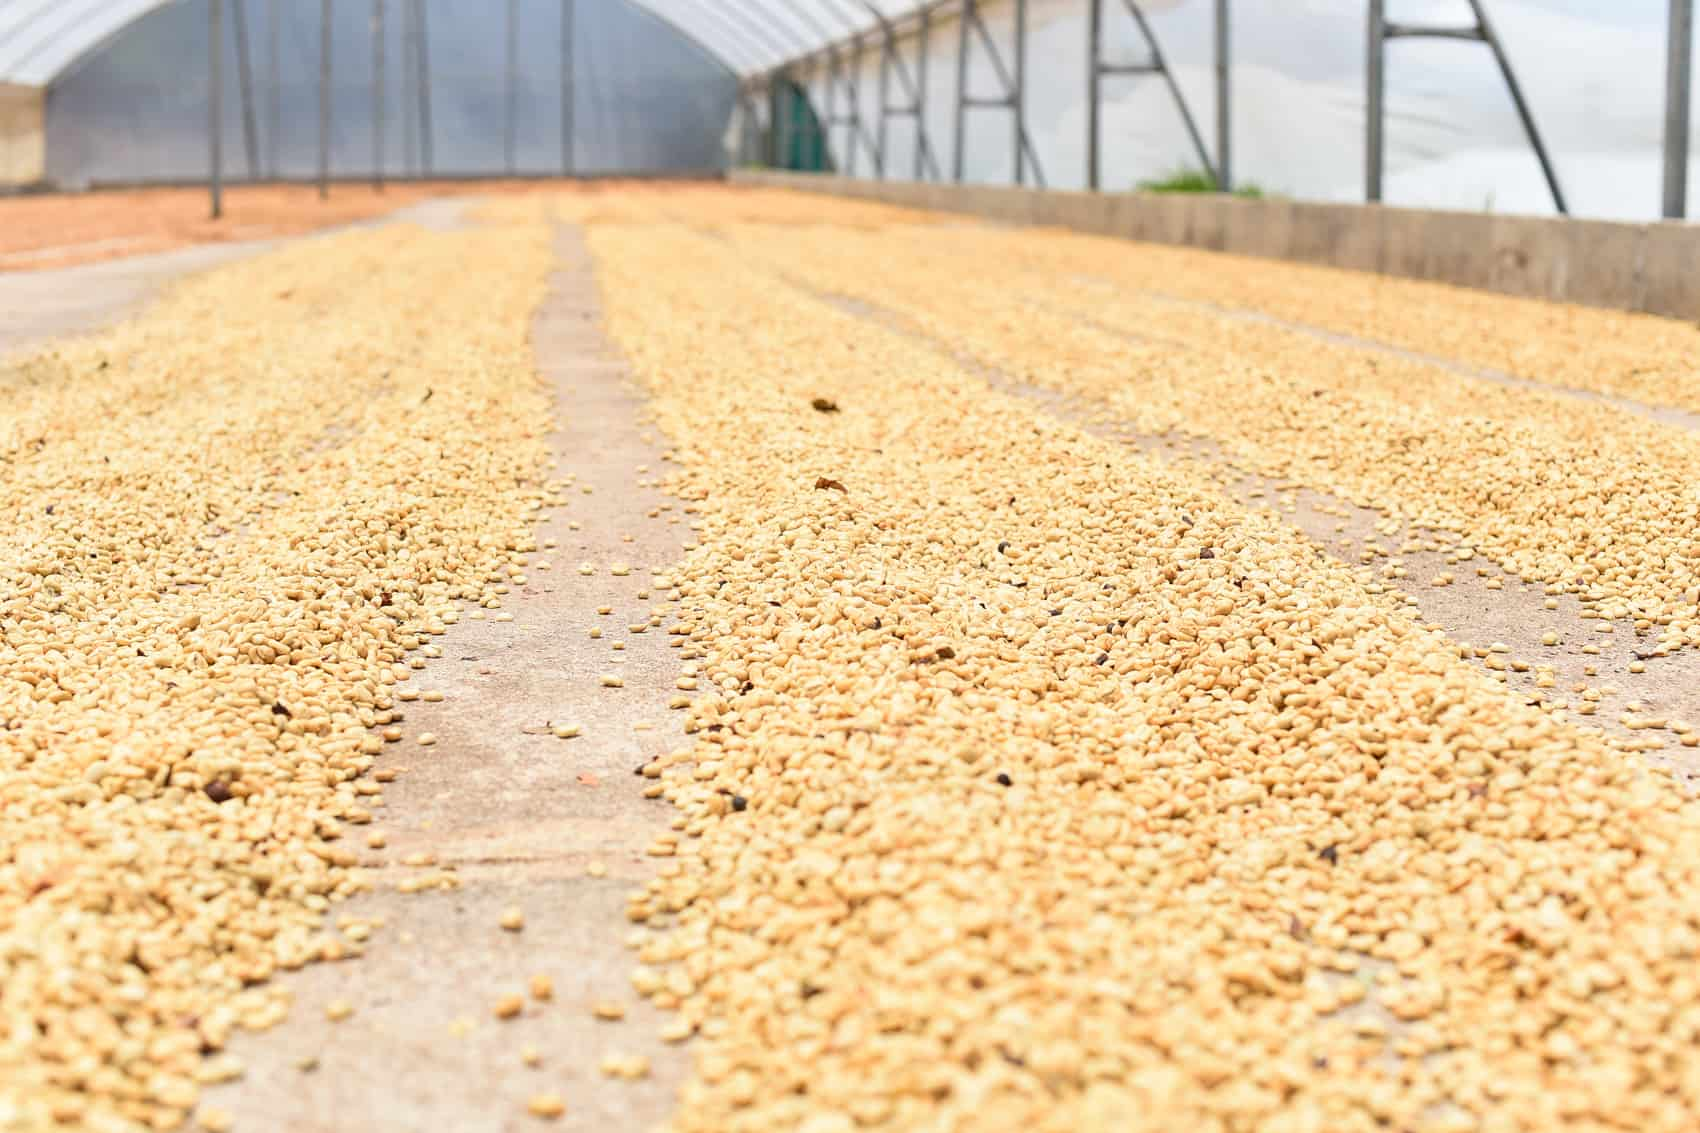 Costa Rica coffee drying at the Vista al Valle micro-mill in Lourdes de Cirrí, in Naranjo, Alajuela.